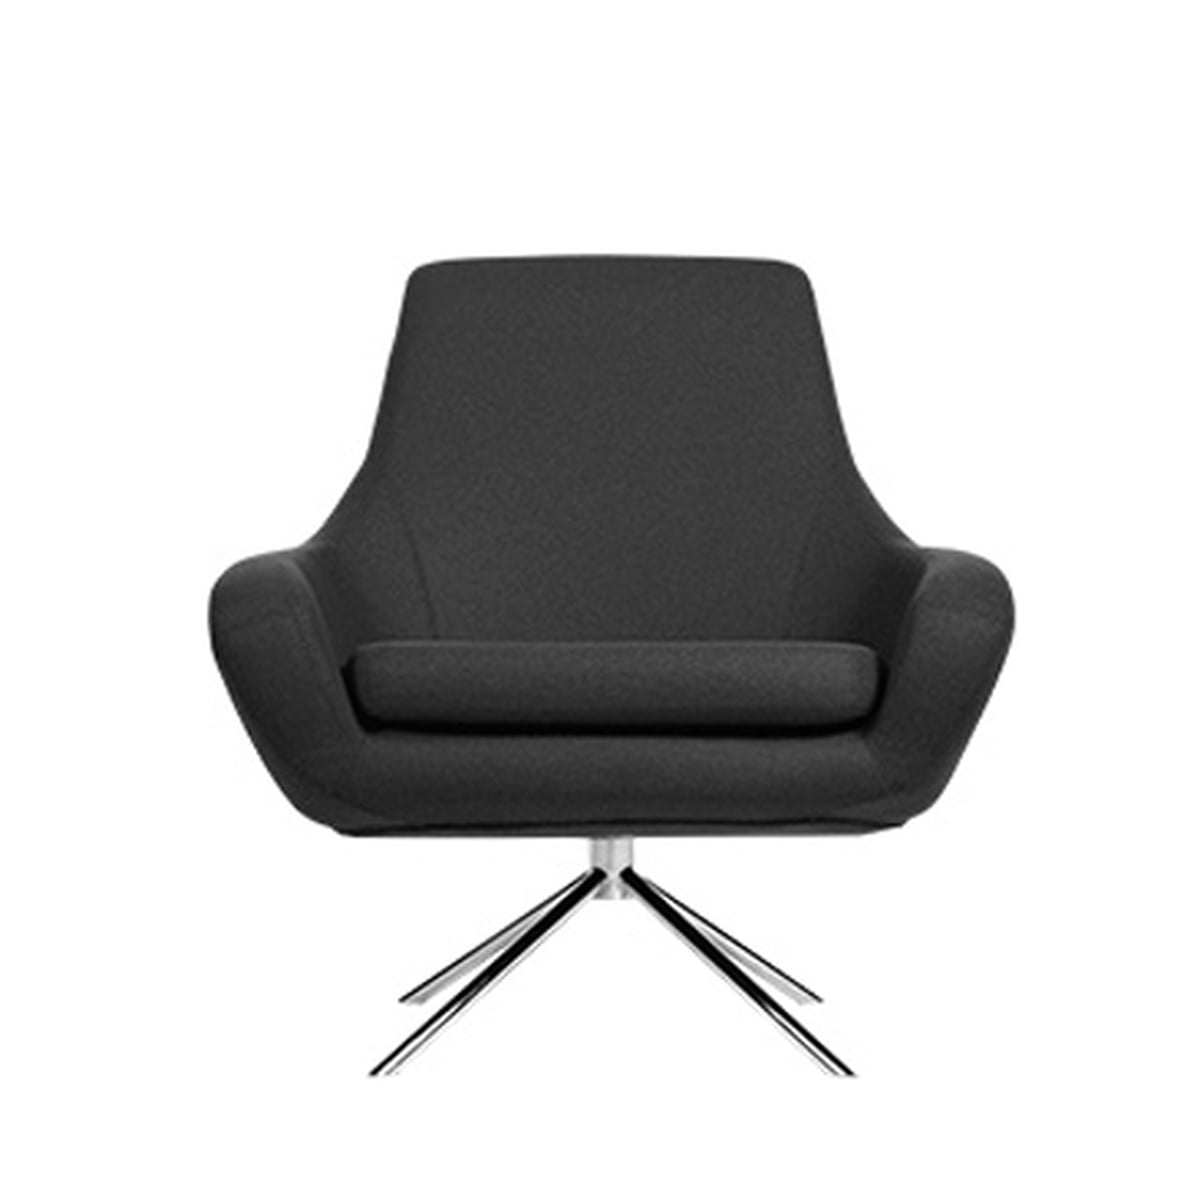 Remarkable Softline Noomi Lounge Fauteuil Vision Donkergrijs 439 Pdpeps Interior Chair Design Pdpepsorg